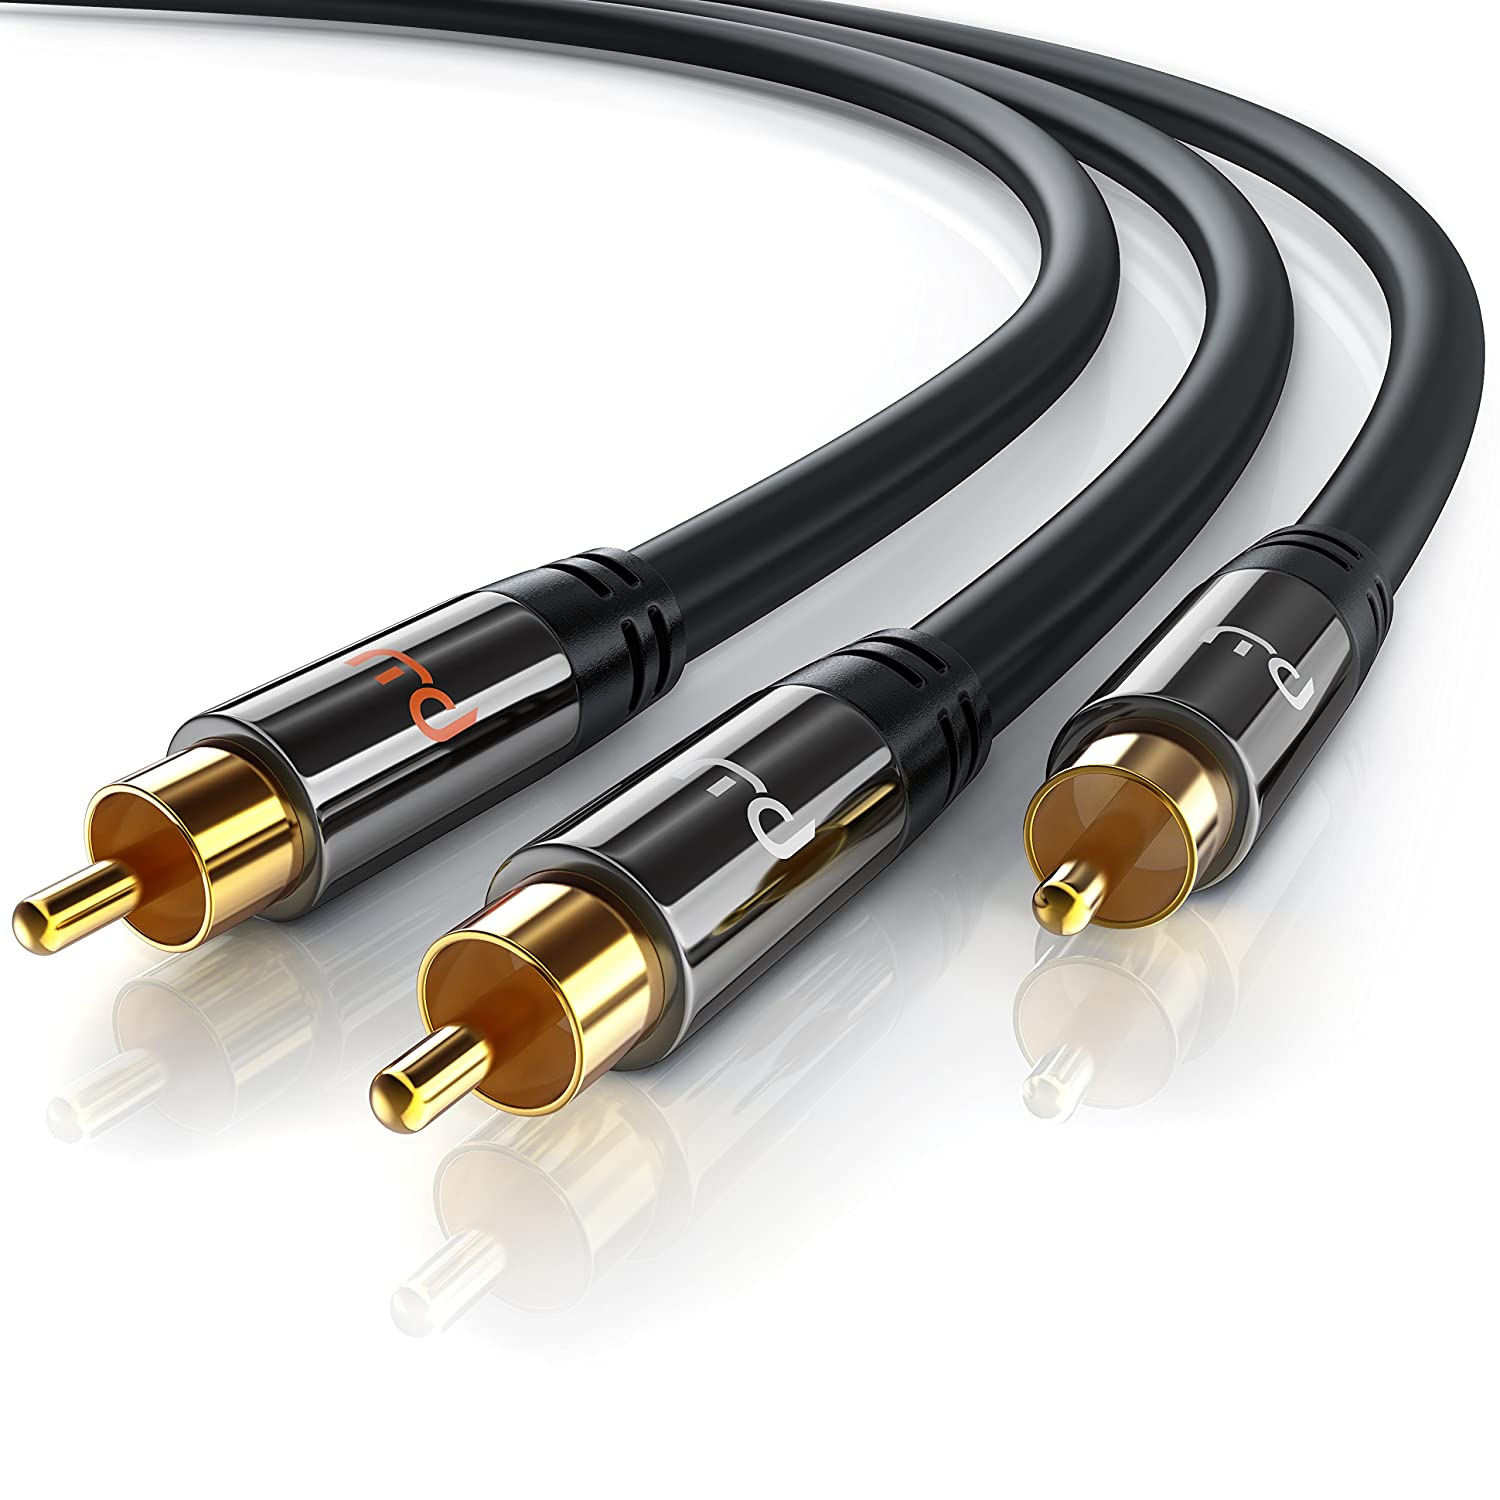 Primewire - 2.0m HQ Y Subwoofer Cable | RCA Connector: Amazon.co.uk ...